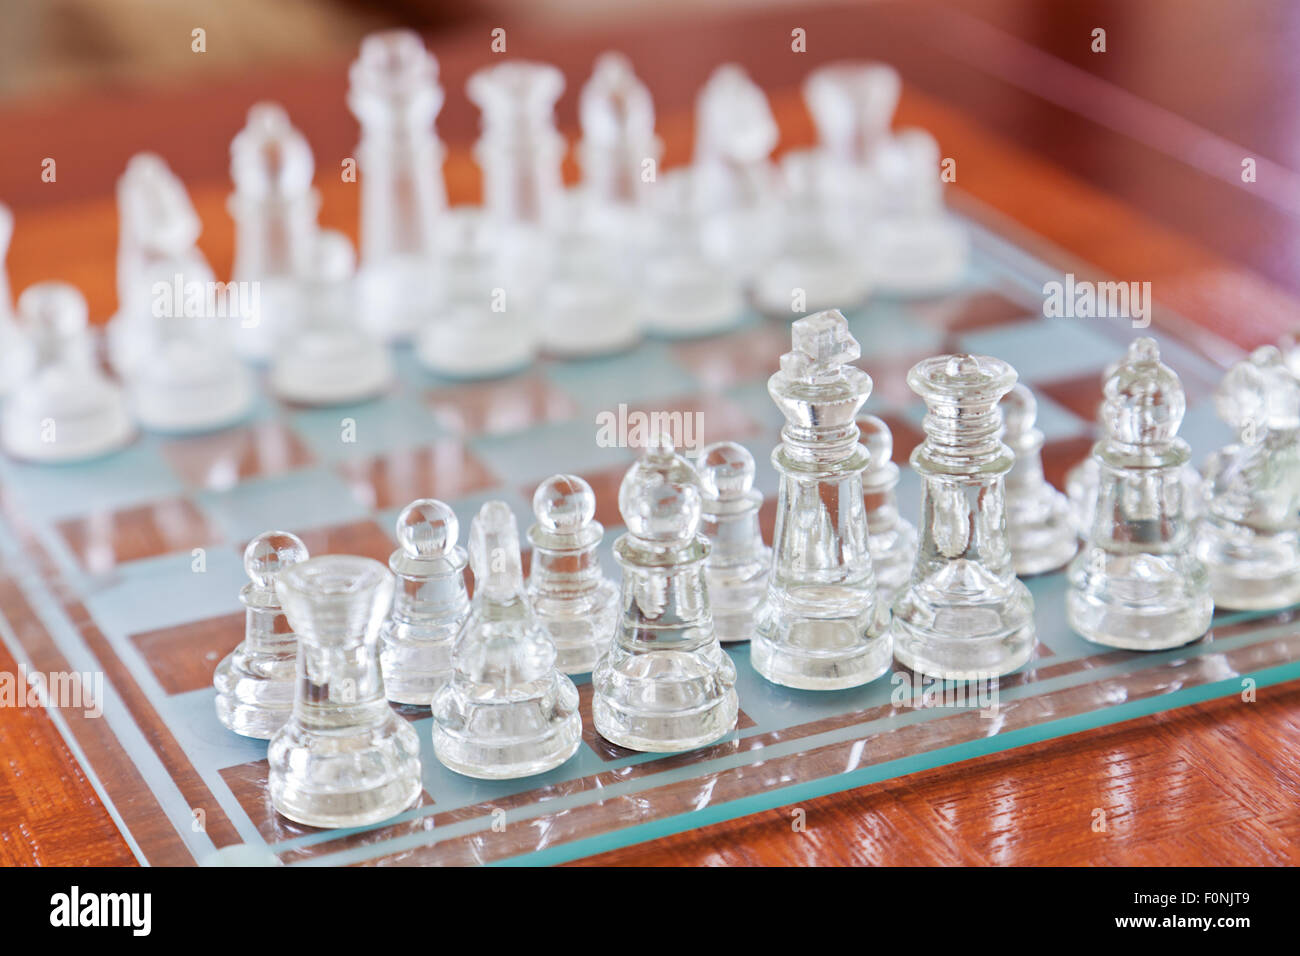 Glass chess - Stock Image